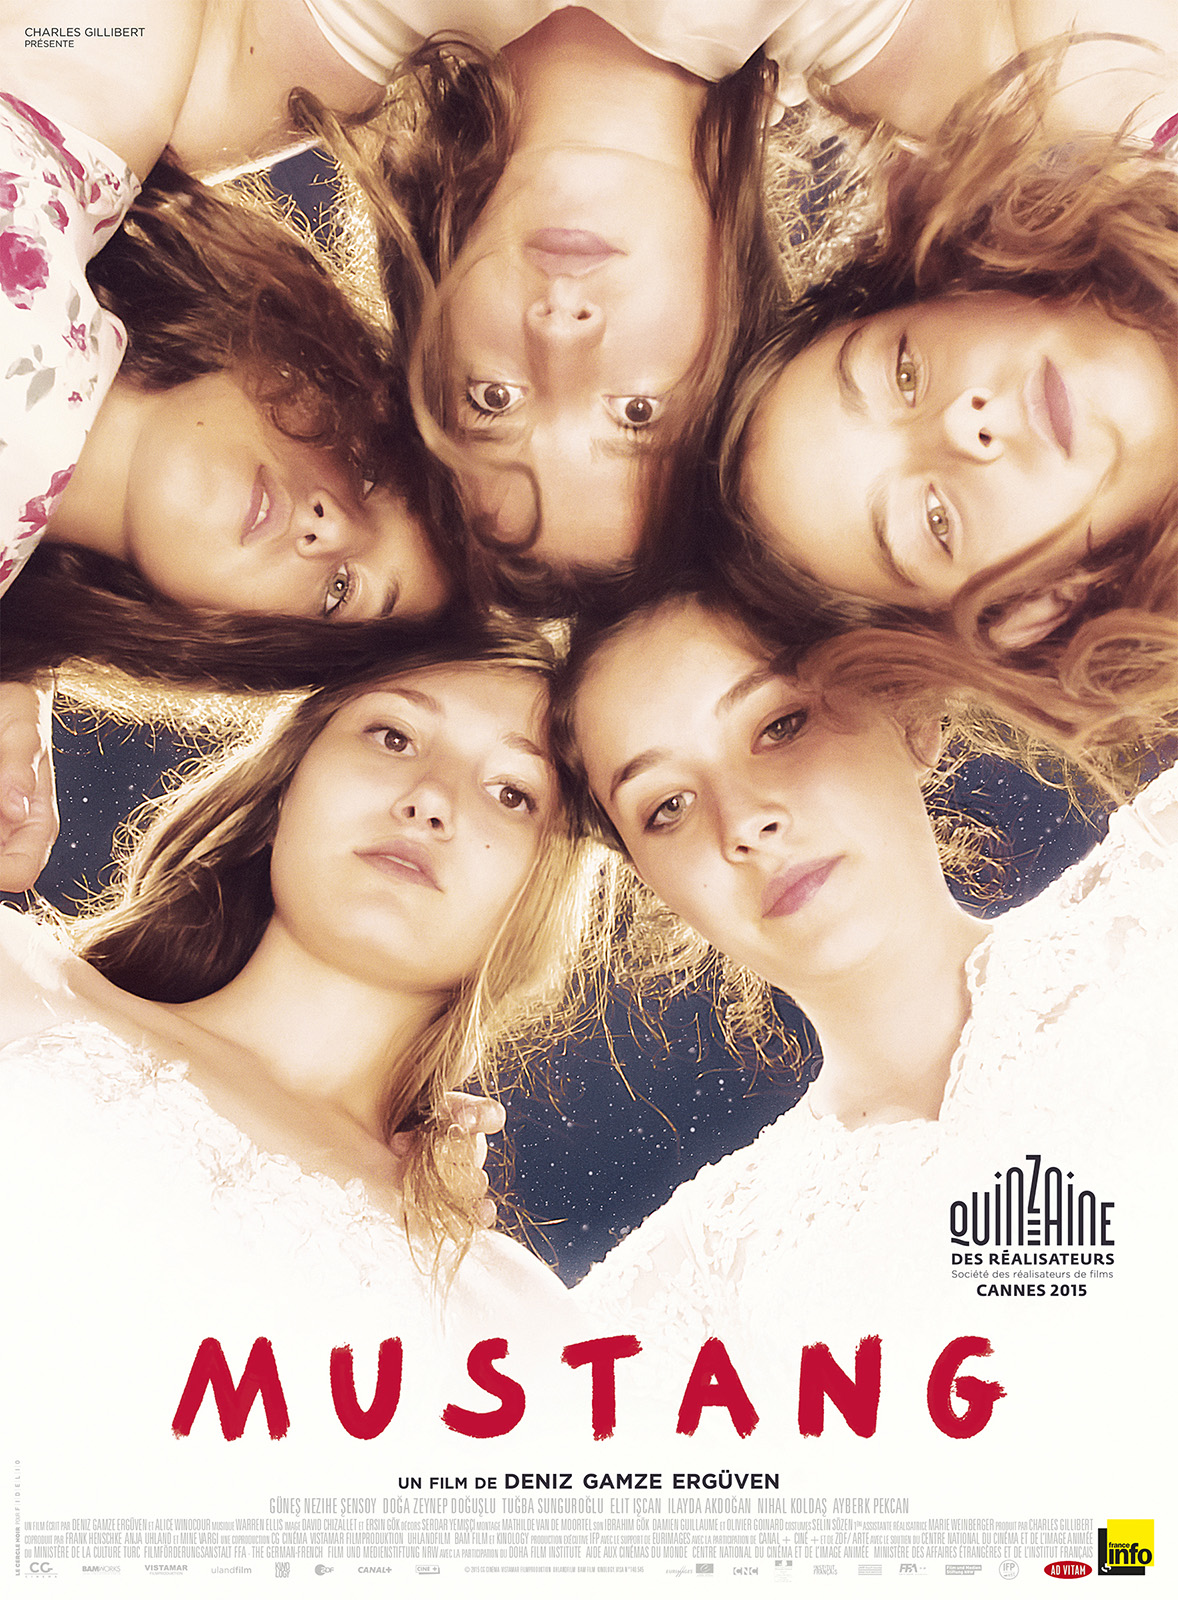 Mustang will represent France at the Oscars!